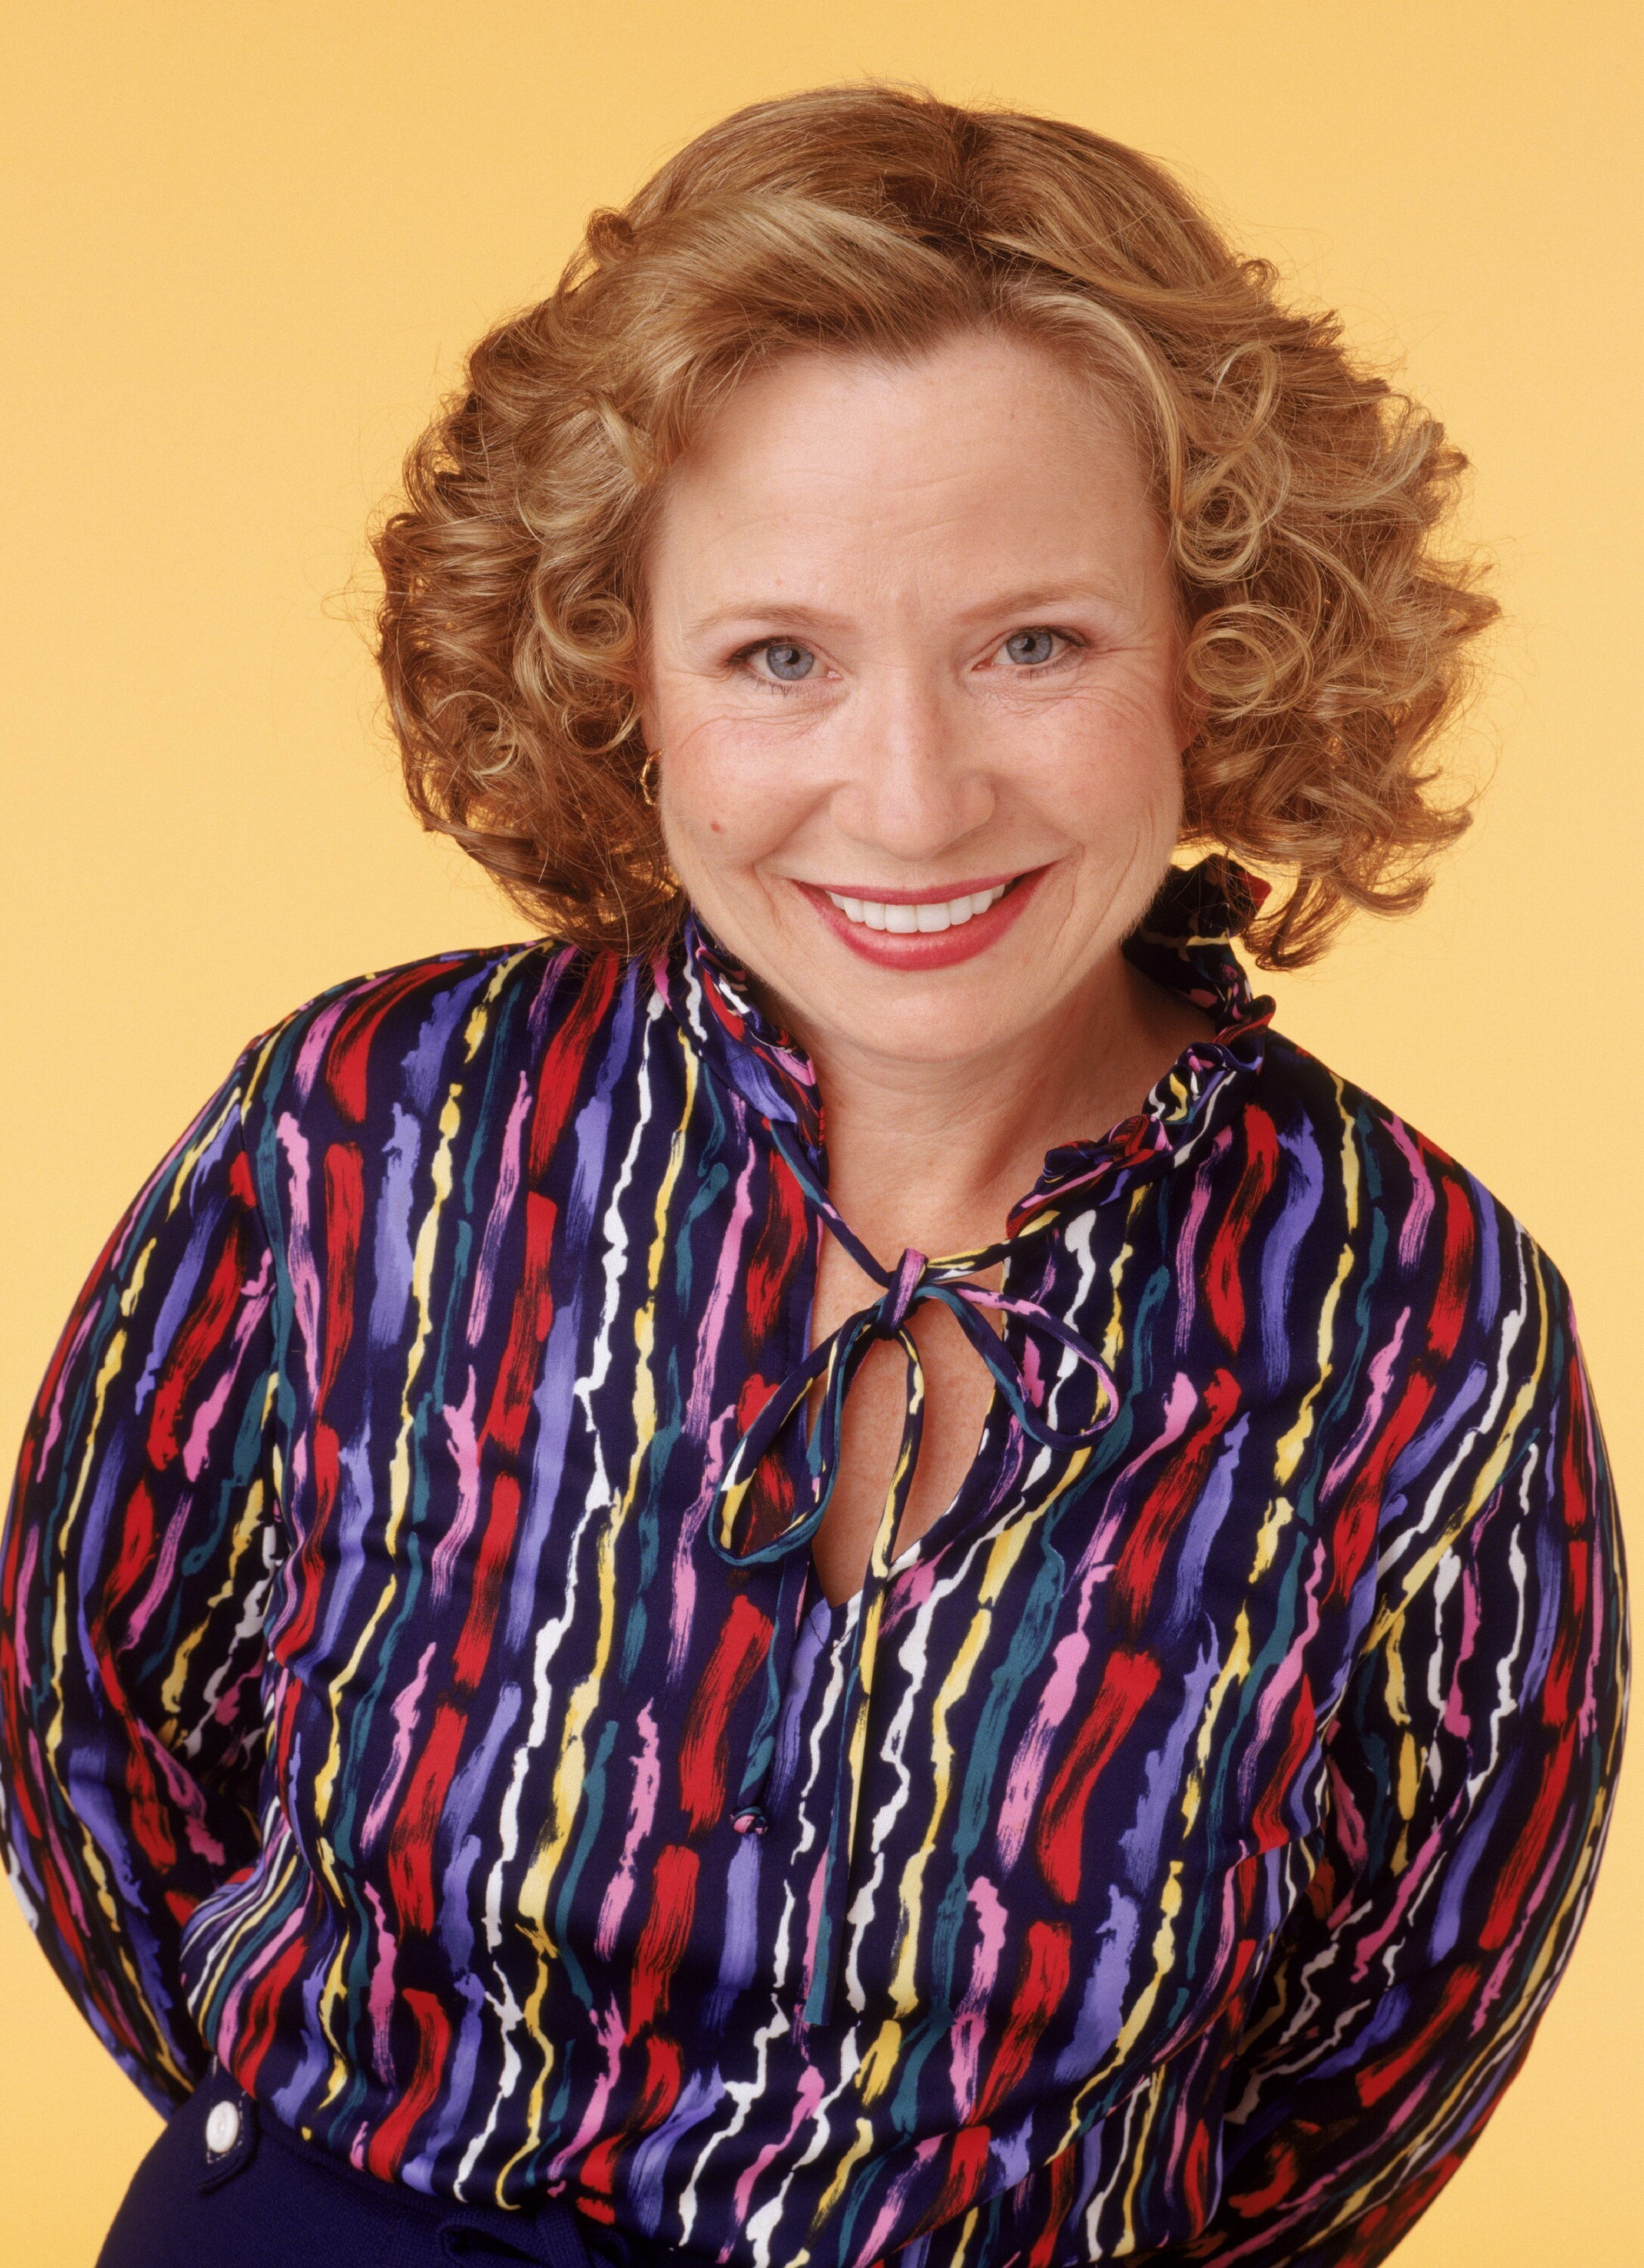 Debra Jo Rupp as Kitty Forman (Then)  Then and Now The Cast of 'That